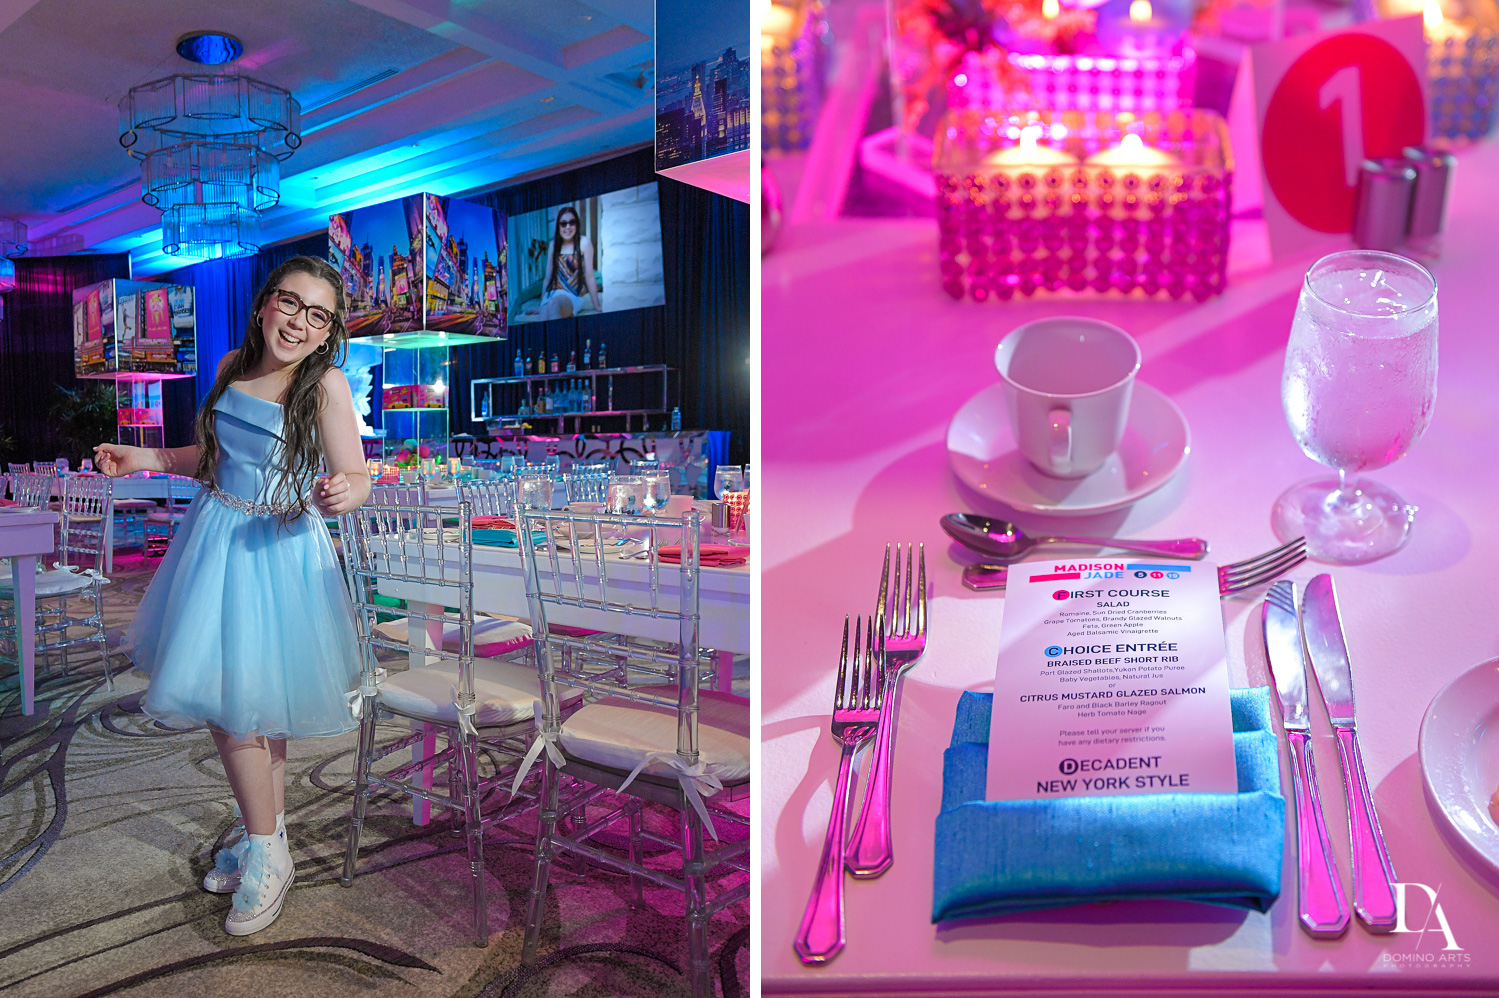 decor and portrait at New York Theme Bat Mitzvah at Woodfield Country Club, Boca Raton by Domino Arts Photography